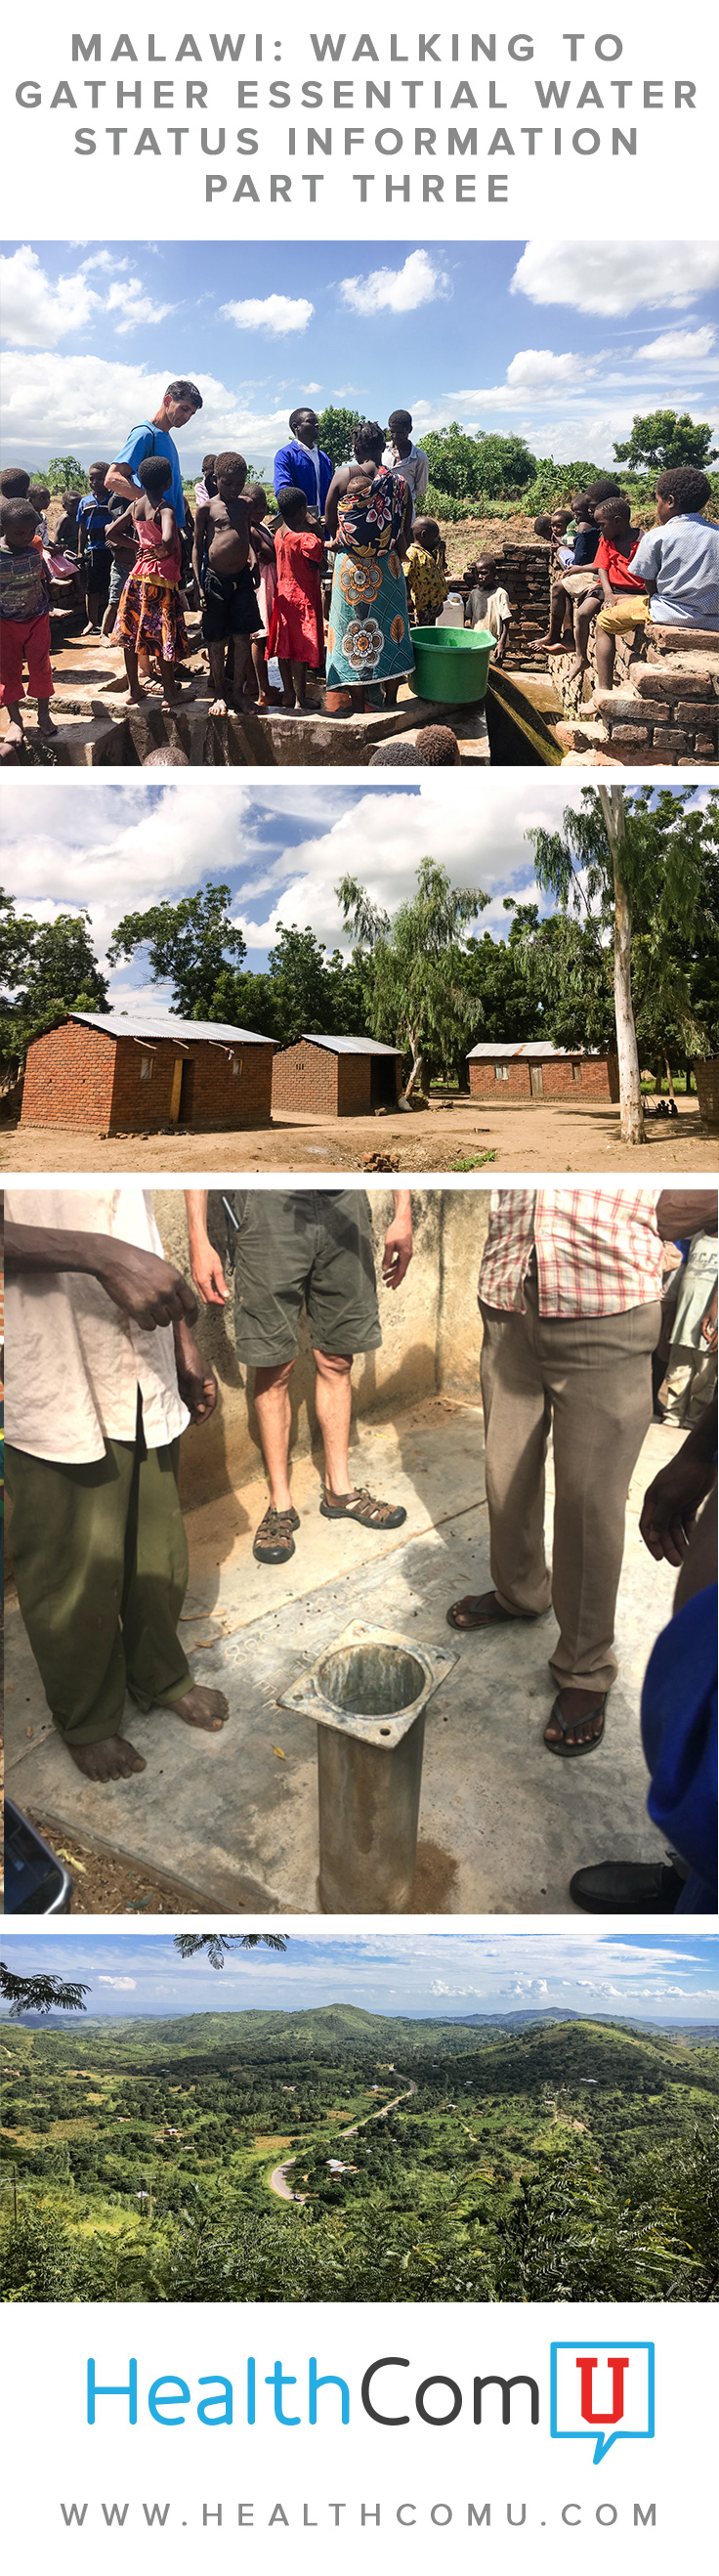 Malawi: Walking to Gather Essential Water Status Information: Part Three | HealthComU